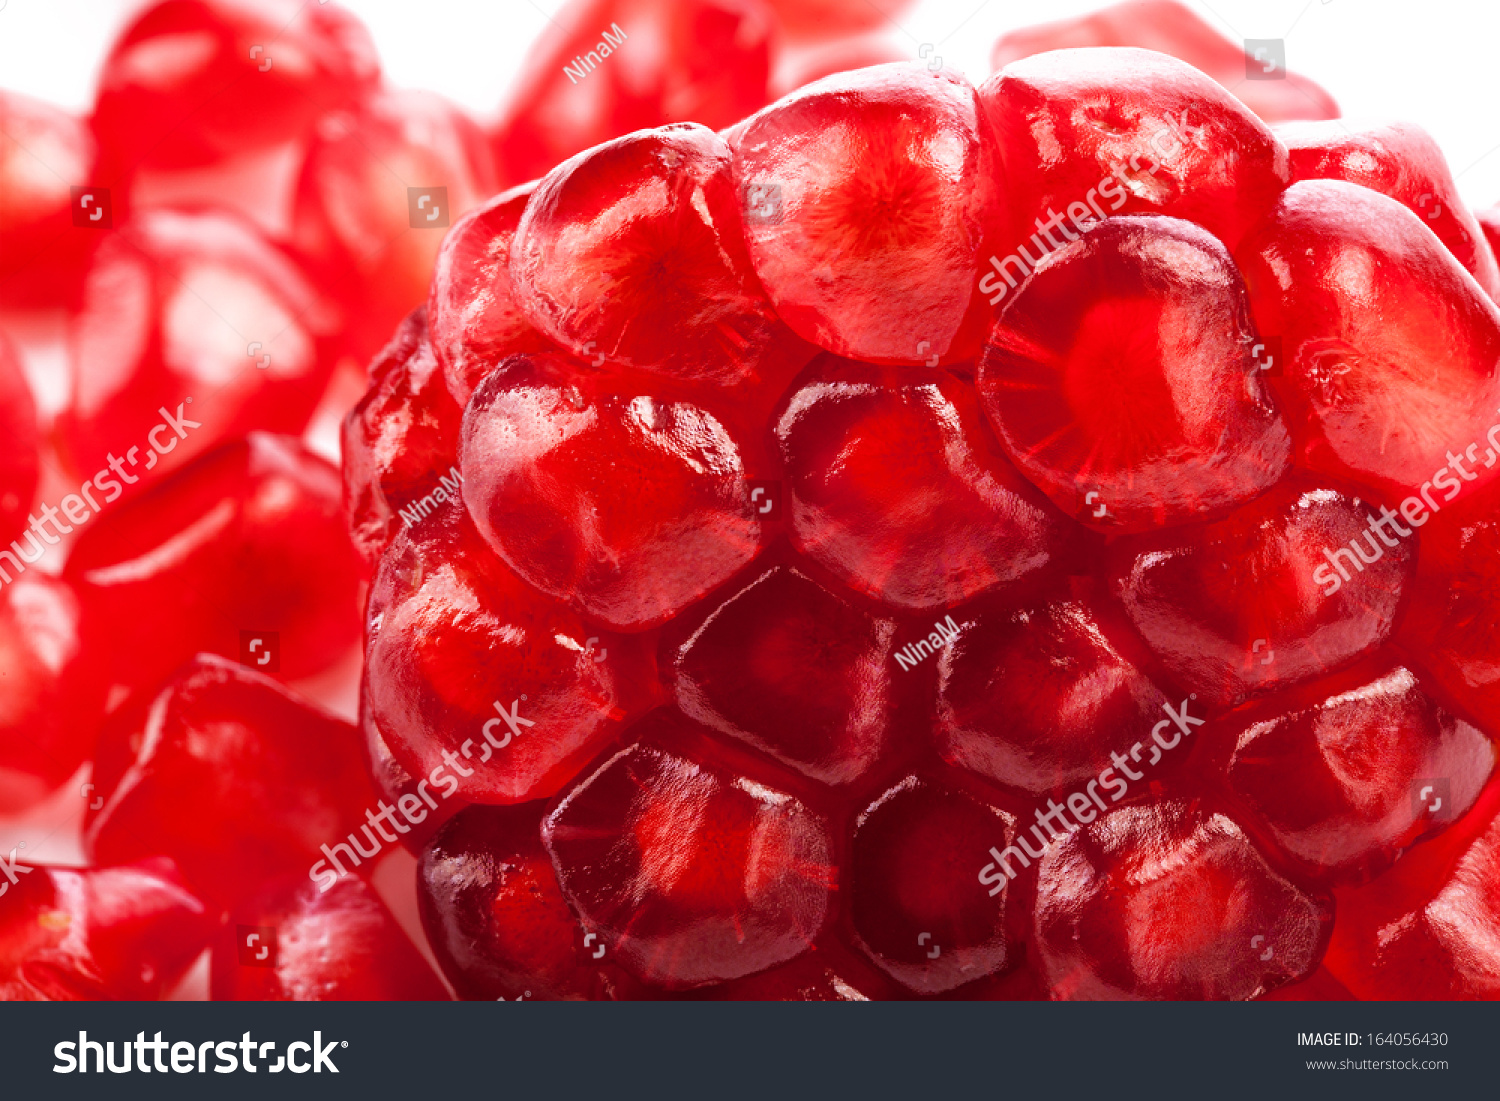 how to get pomegranate seeds out of fruit